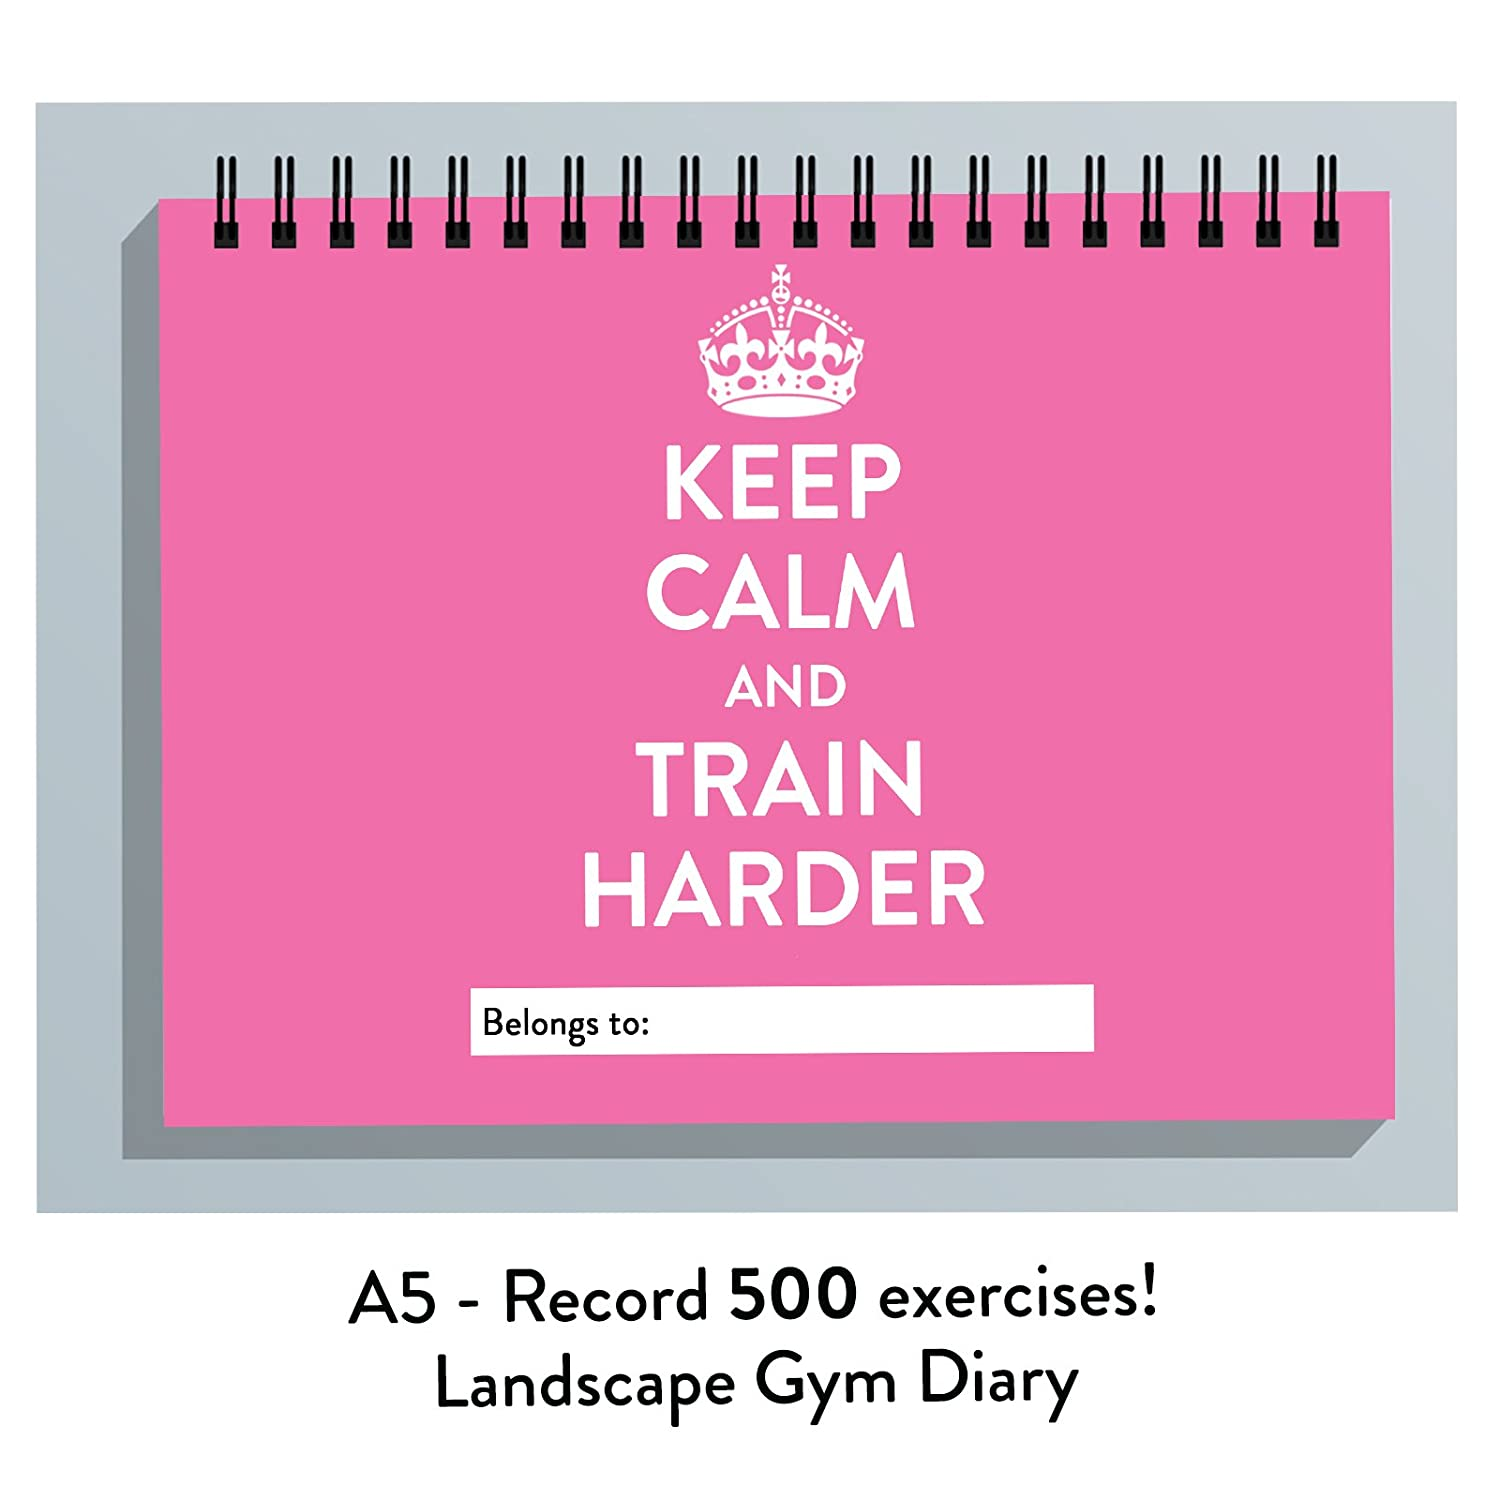 GYM TRAINING DIARY, 500 EXERCISES RECORDED JOURNAL, MEN & WOMEN'S LOG BOOK,REPS, WEIGHTS (K C PINK) The Calorie Club